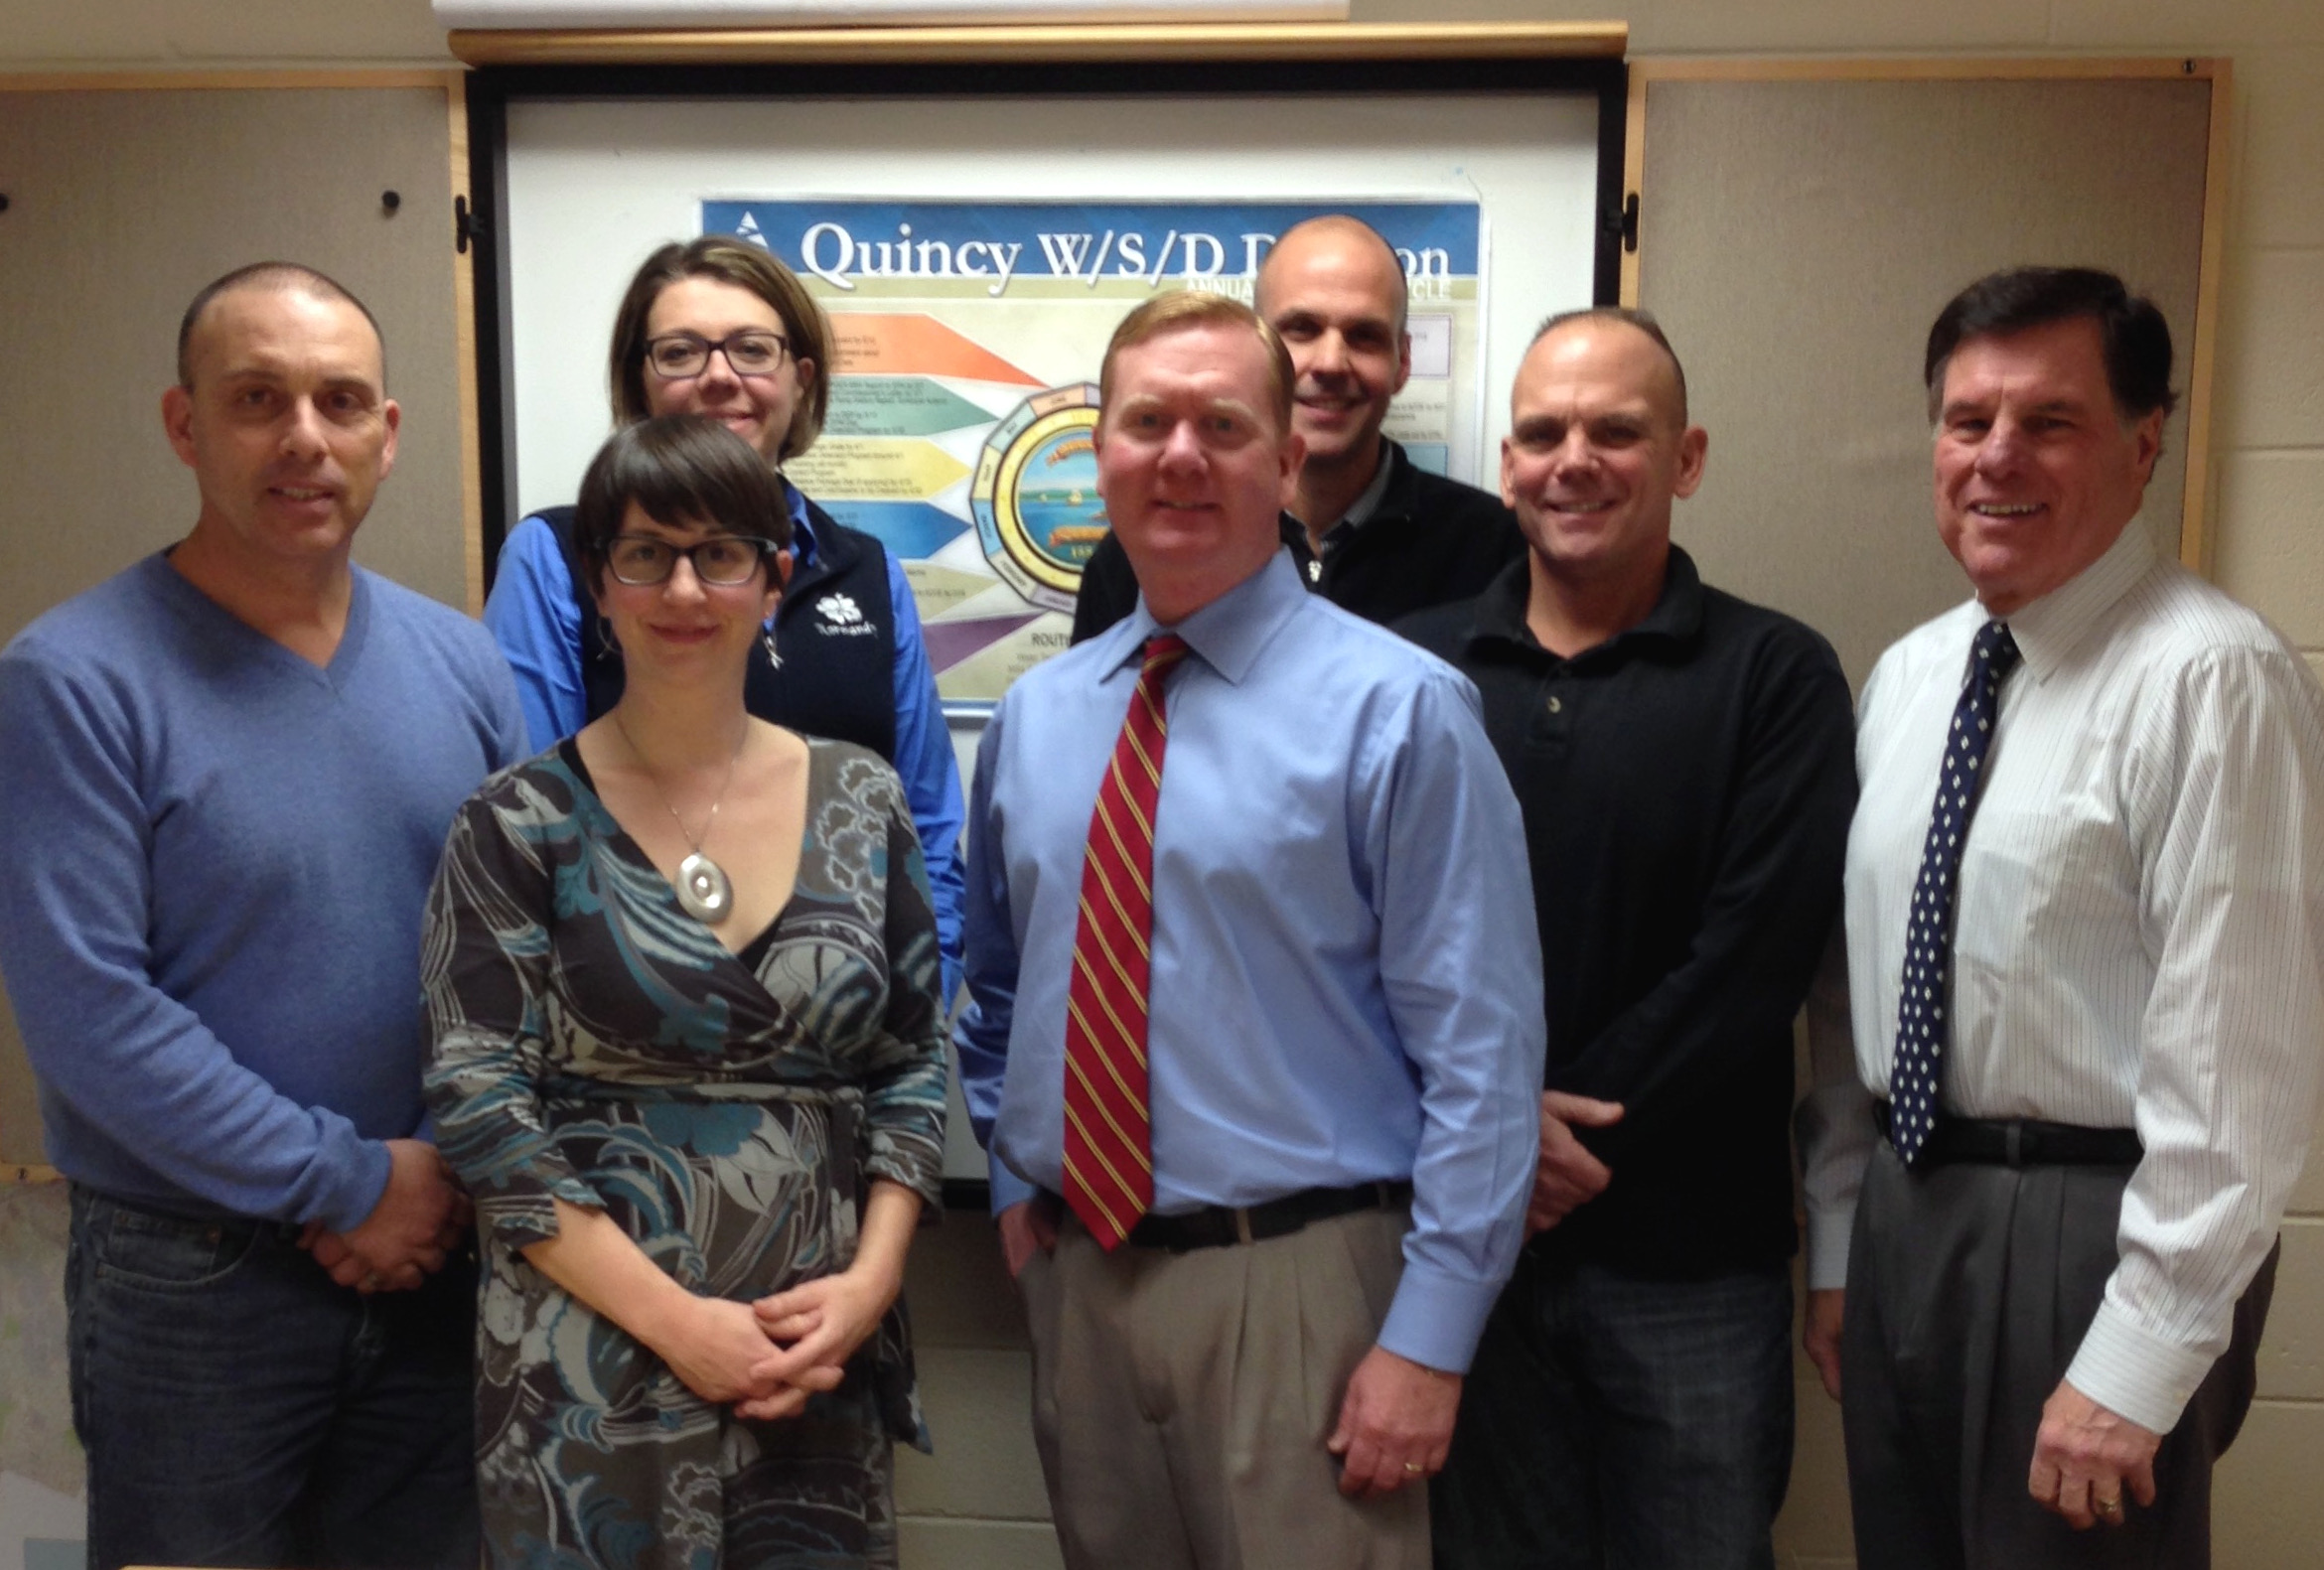 Becky Smith of Clean Water with Quincy Water & Sewer staff